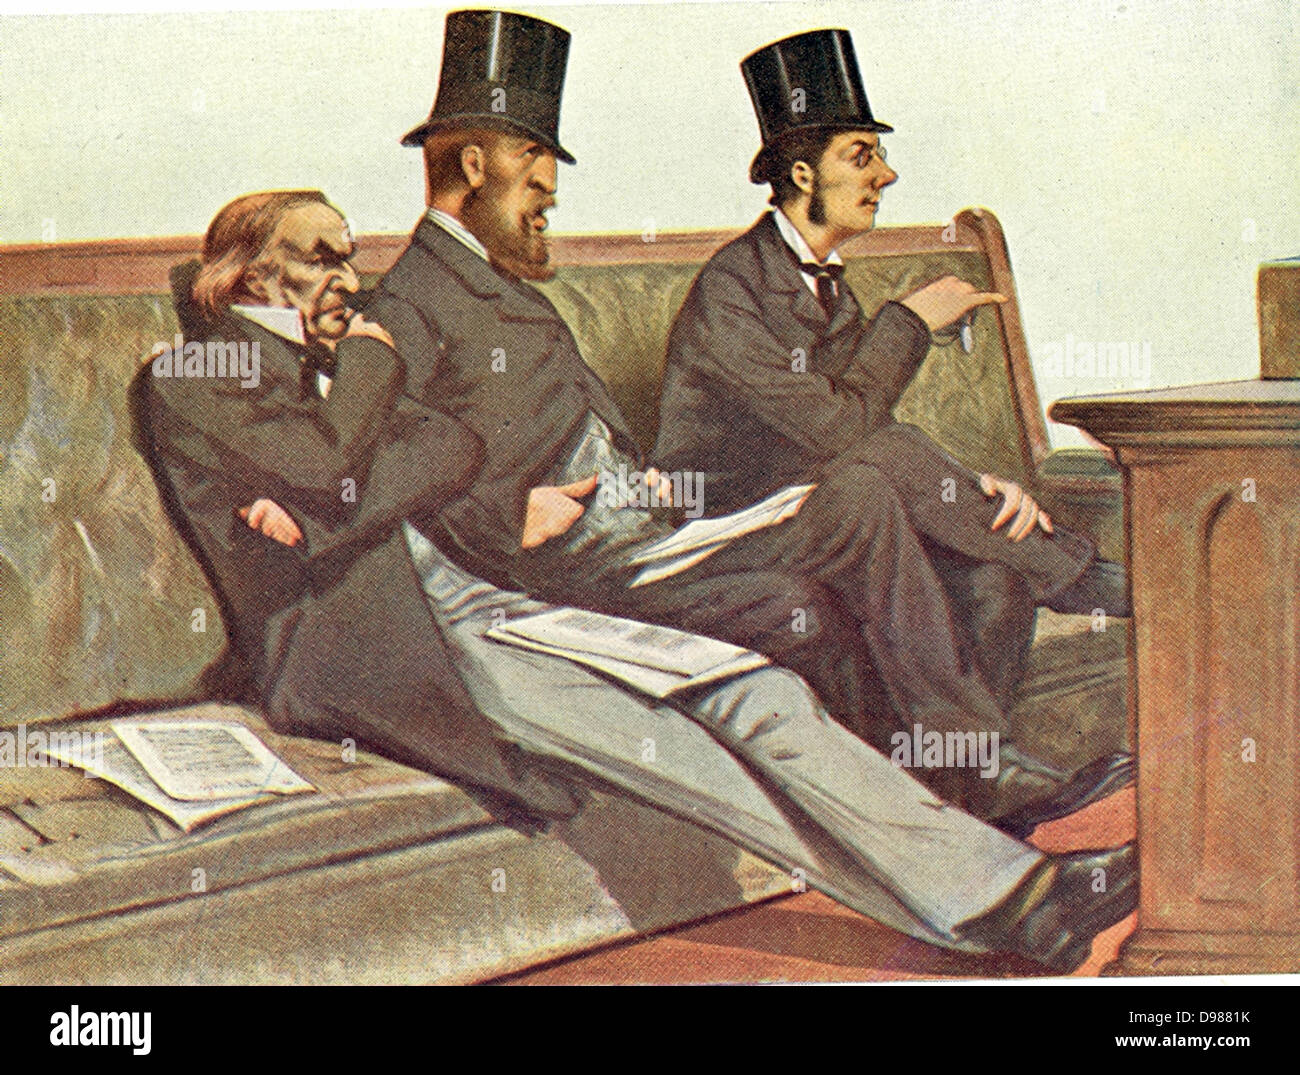 Babble, Birth, and Brummagem' (Talk, Aristocracy, and Birmingham): Gladstone, the Duke of Devonshire and Joseph - Stock Image